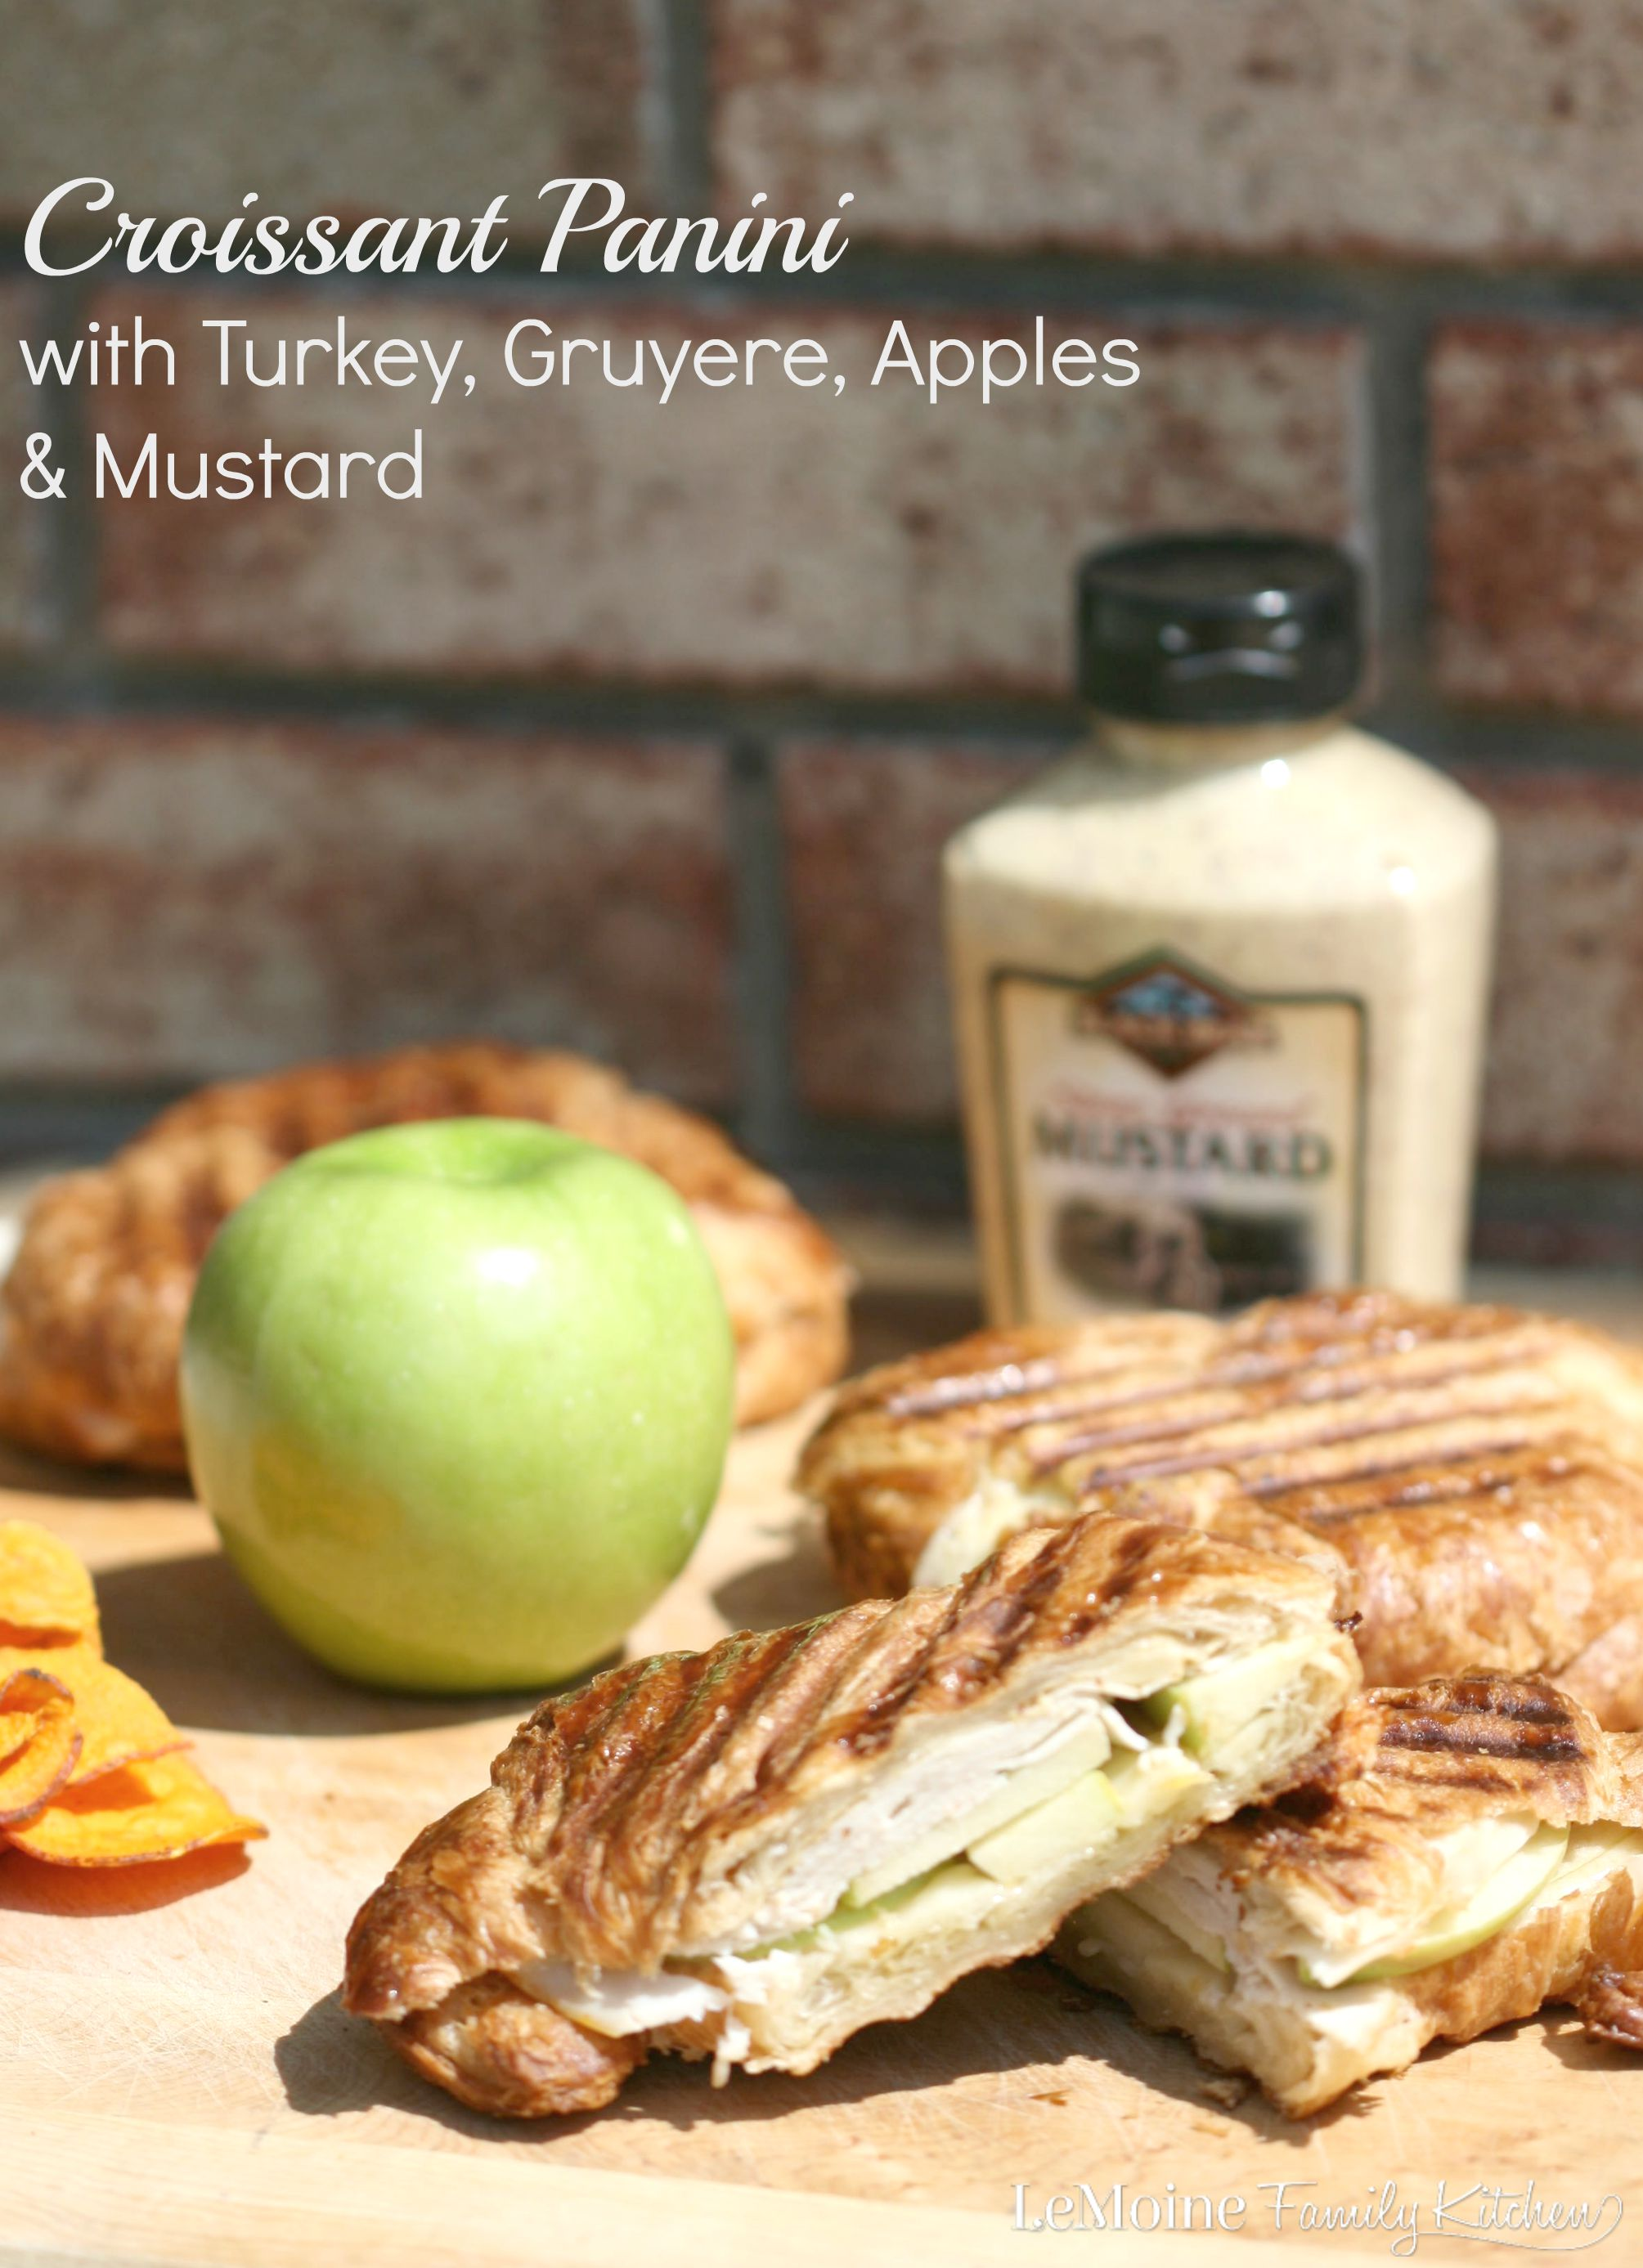 Croissant Panini with Turkey, Gruyere, Apples & Mustard | LeMoine Family Kitchen . Easy 5 ingredient meal with tons of flavor and so quick and easy! This is a delicious panini!!